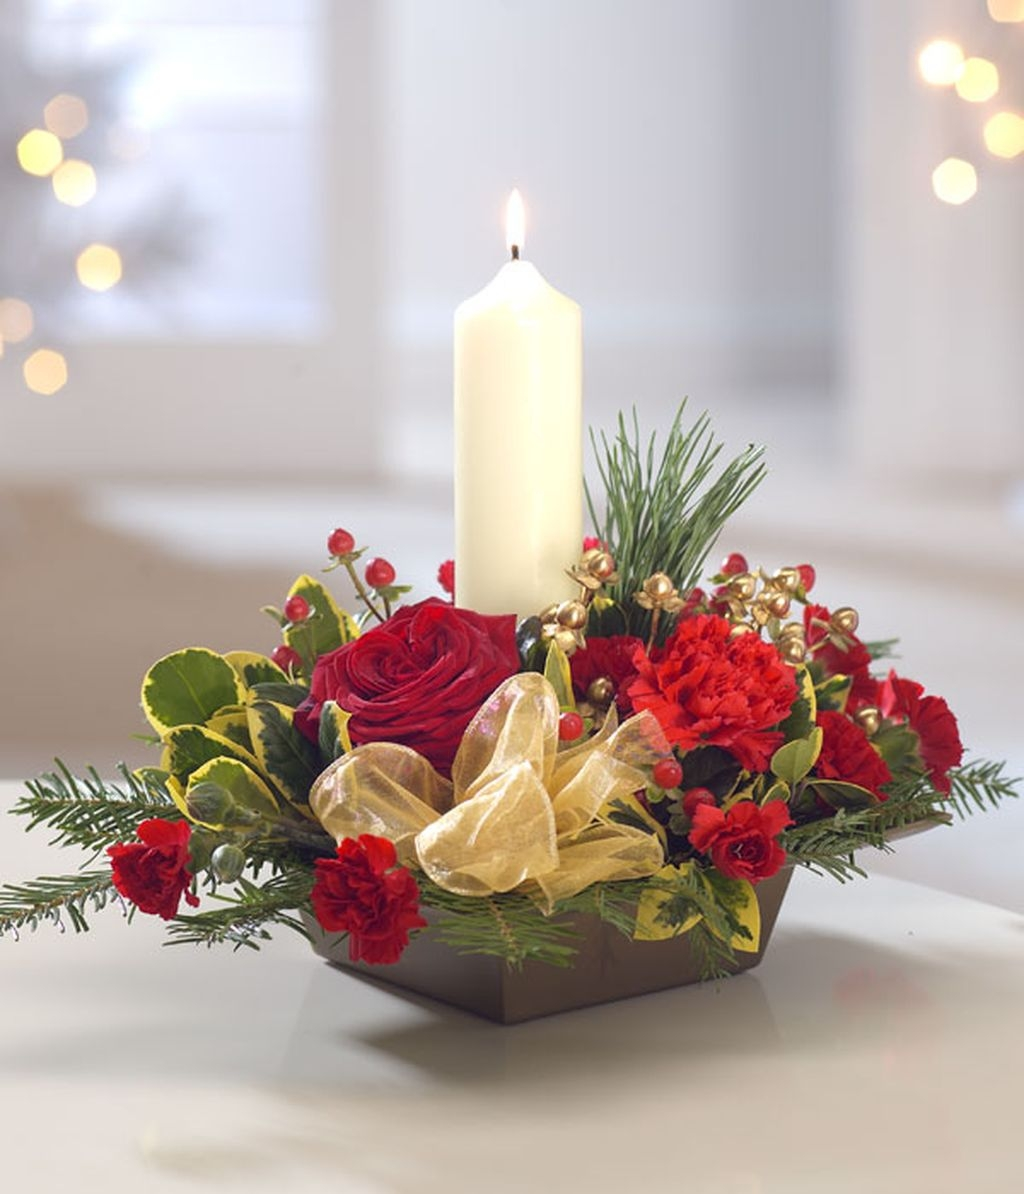 Romantic Christmas Centerpieces Ideas With Candles 24